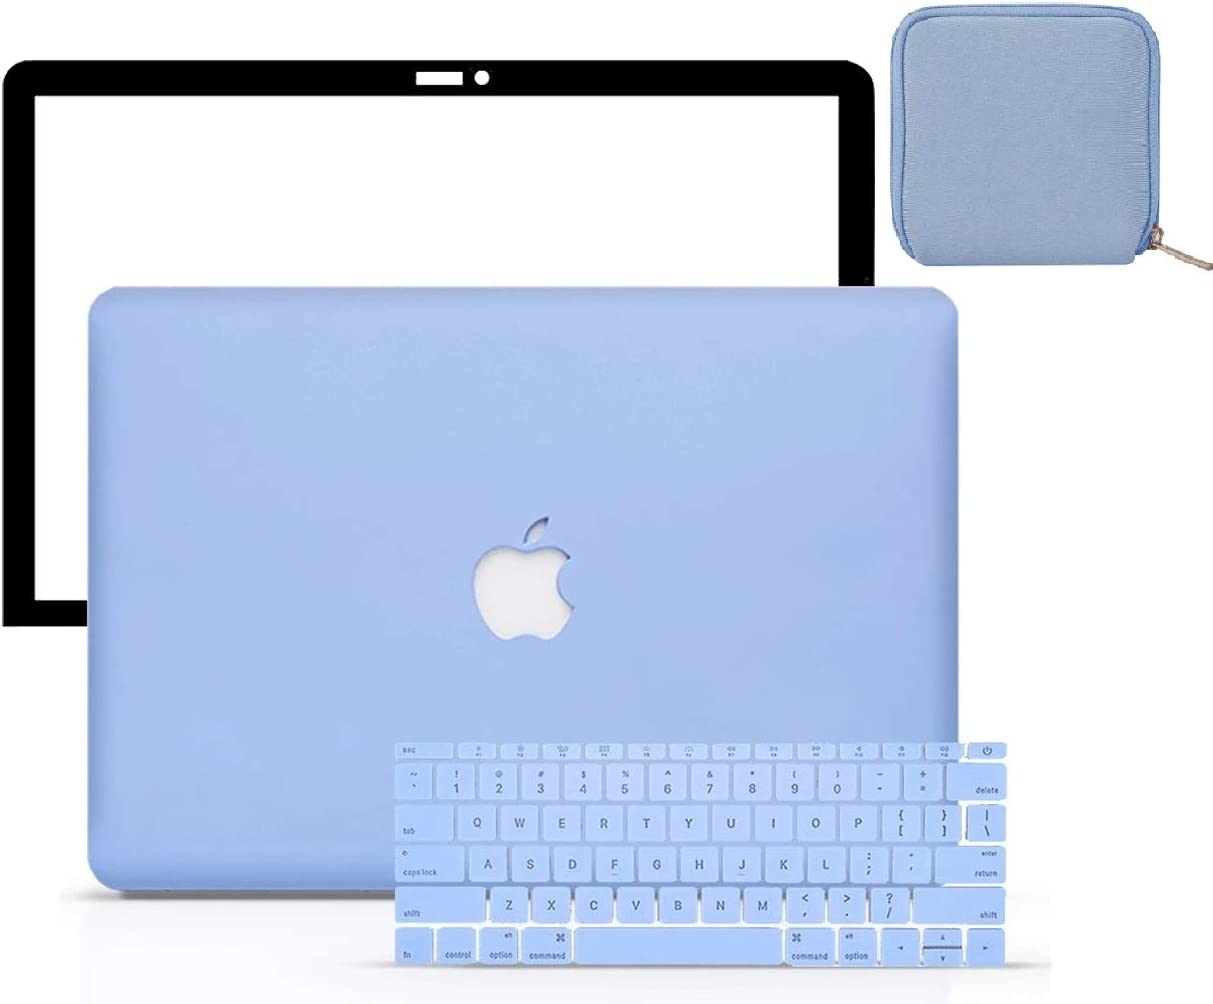 """LuvCase 4 in 1 LaptopCase forMacBookMacBook Pro 12"""" Retina A1534HardShellCover, Pouch, Keyboard Cover & Screen Protector(Serenity Blue)"""